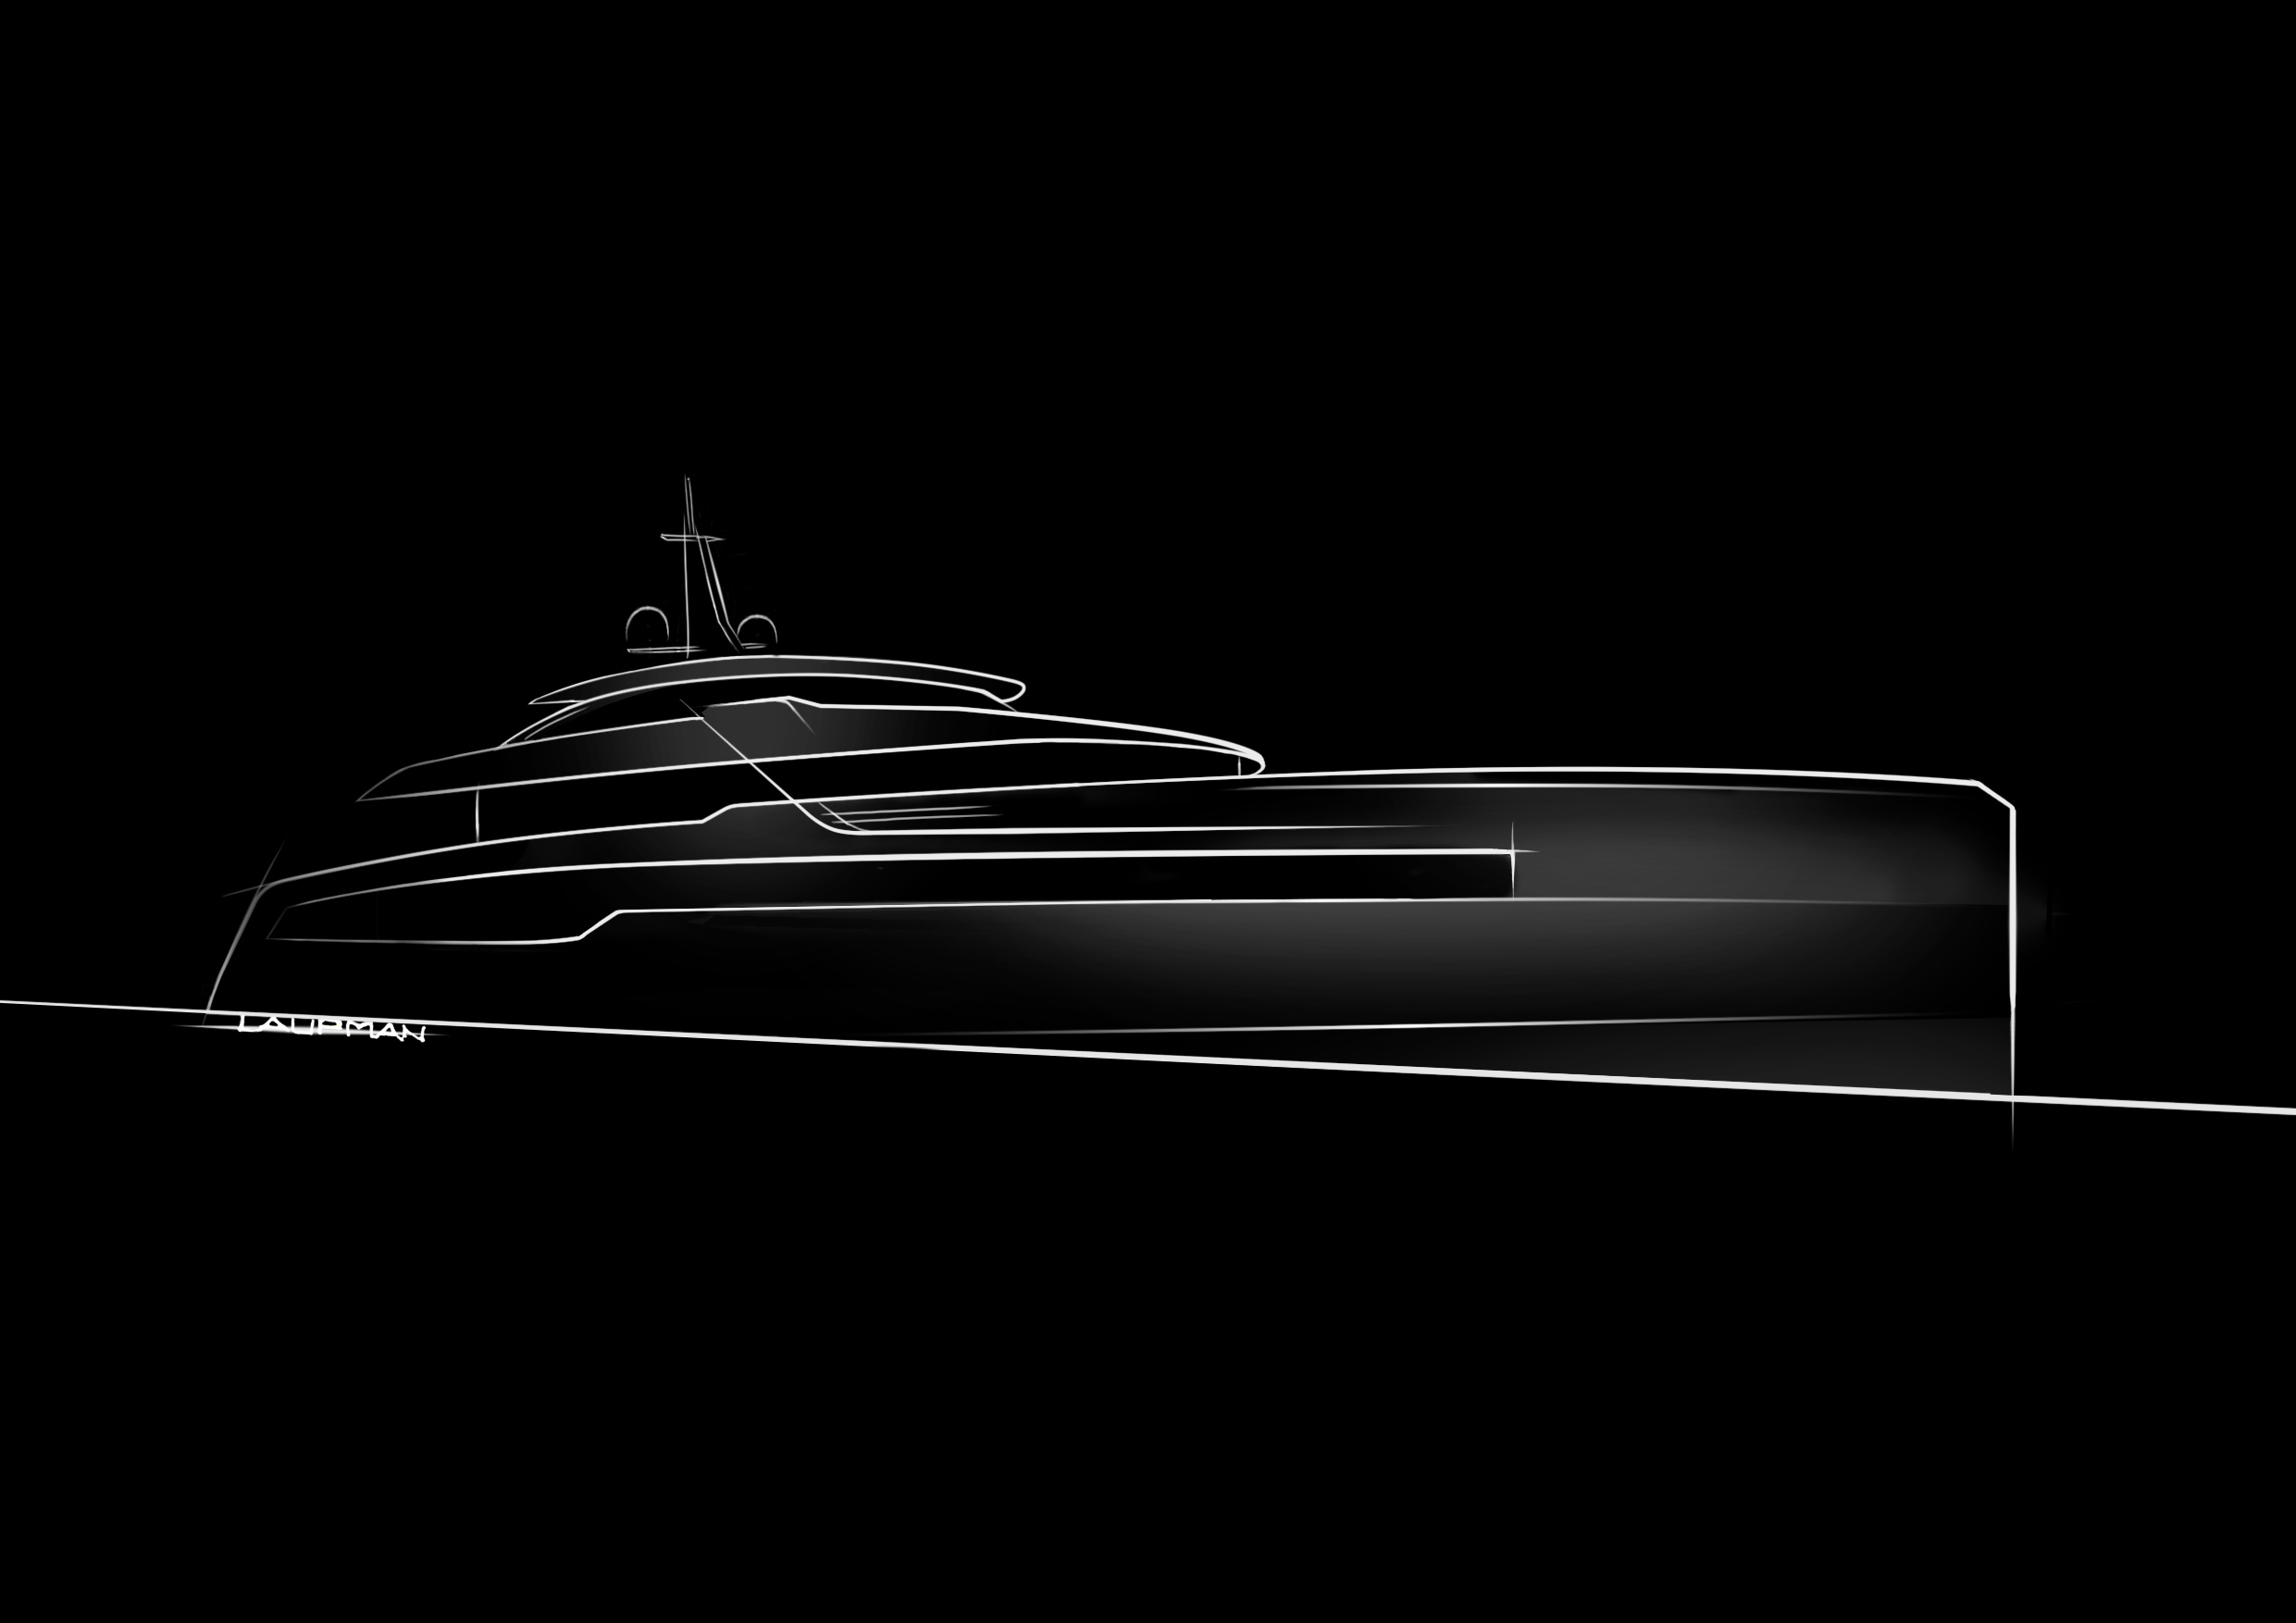 Crn to build a new 62-metre mega yacht Designed by Omega Architects